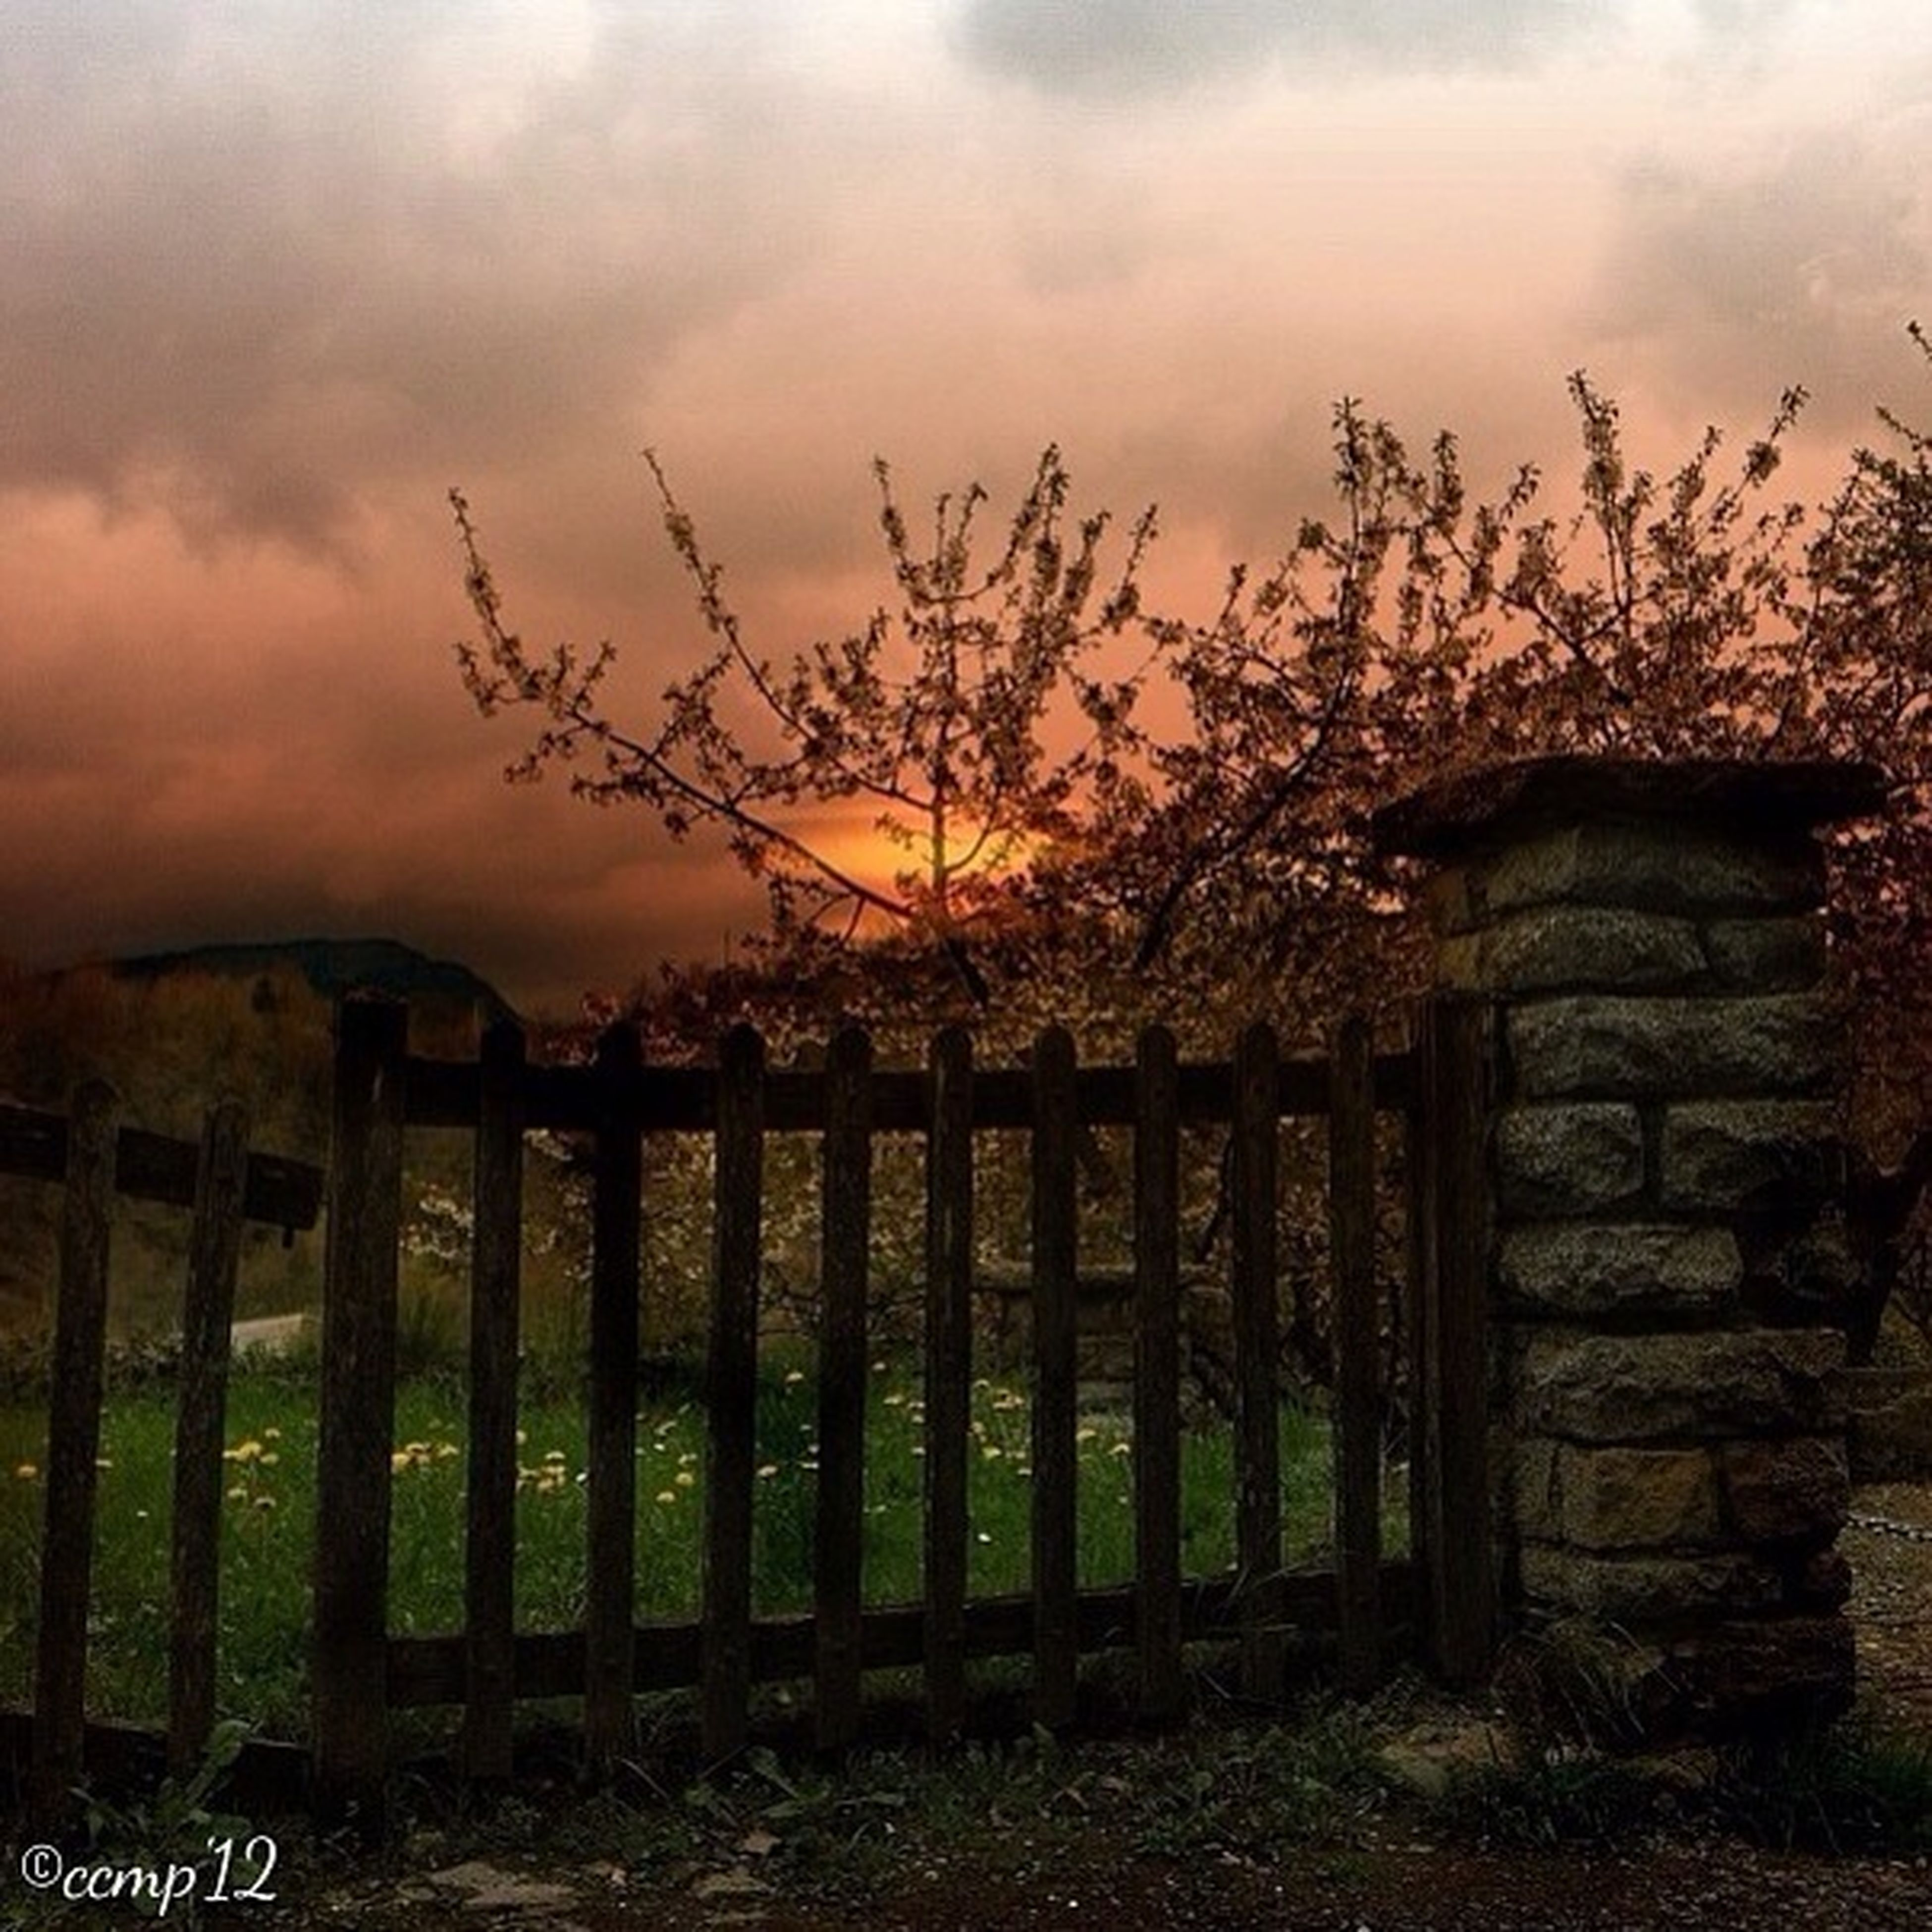 sky, cloud - sky, built structure, architecture, fence, cloudy, building exterior, cloud, old, protection, wood - material, sunset, safety, house, field, outdoors, nature, tranquility, security, abandoned